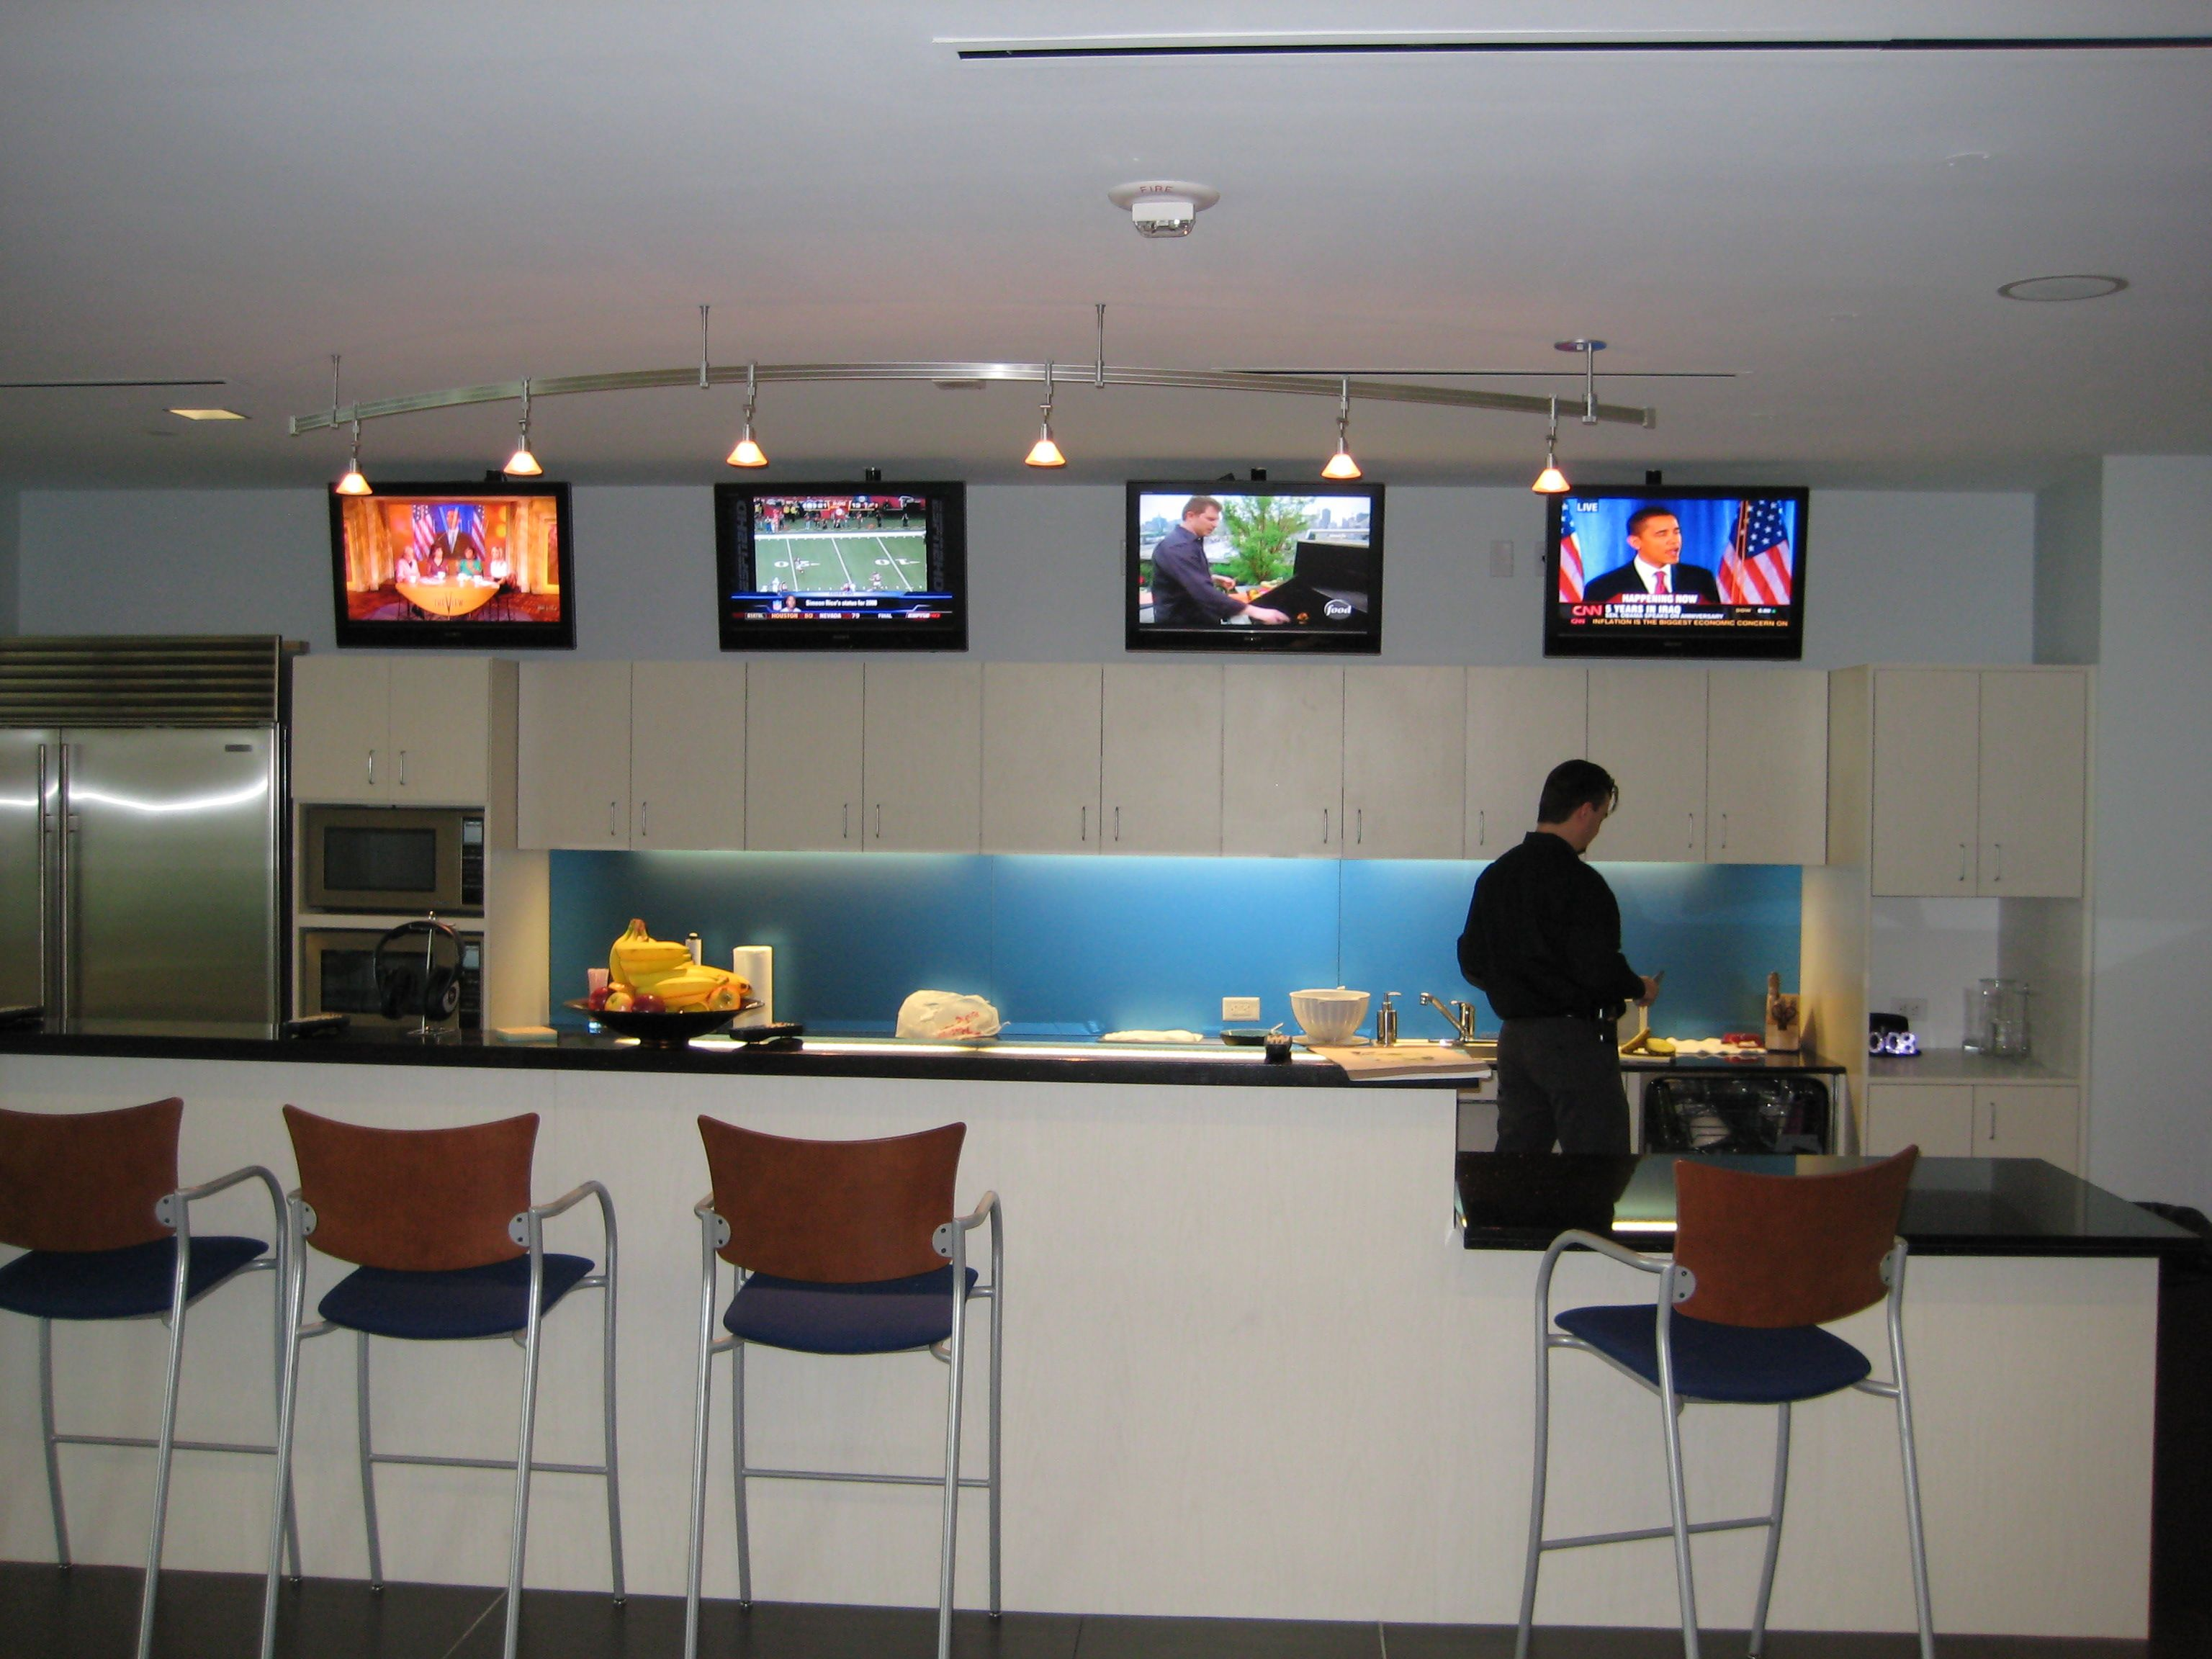 Break room design google search break room reno for Room design builder